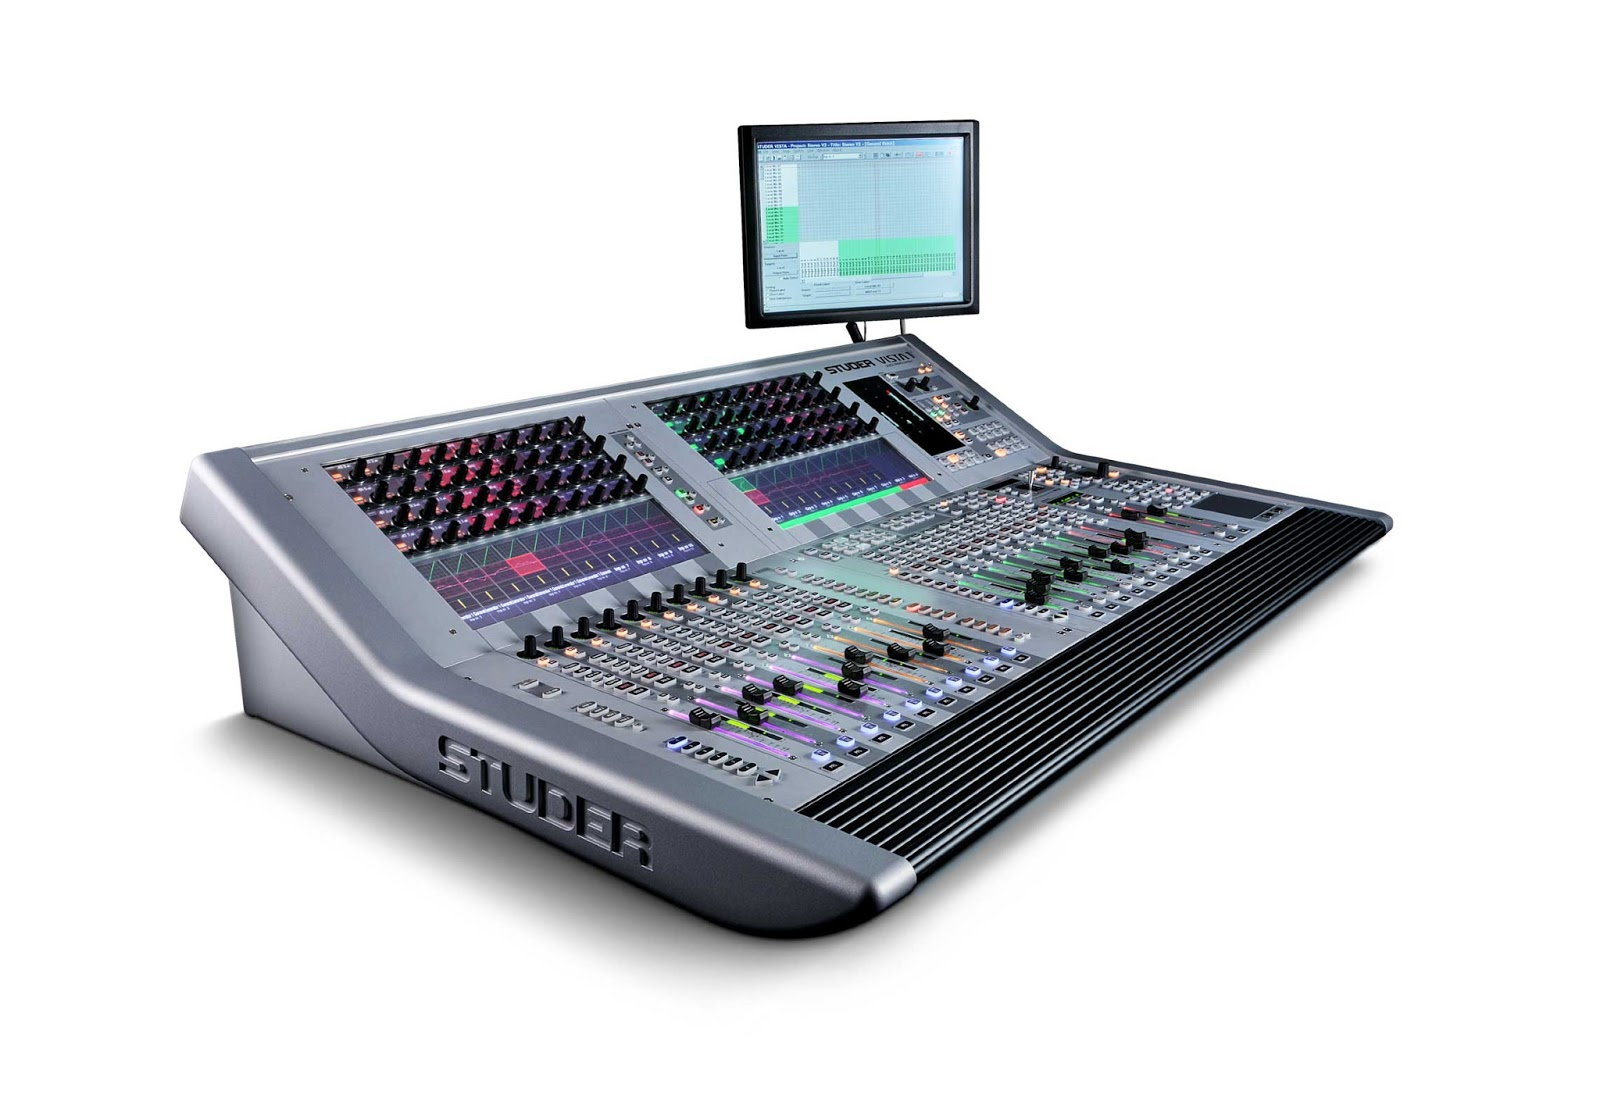 harman s studer showcases smaller vista 1 console harman professional solutions news. Black Bedroom Furniture Sets. Home Design Ideas